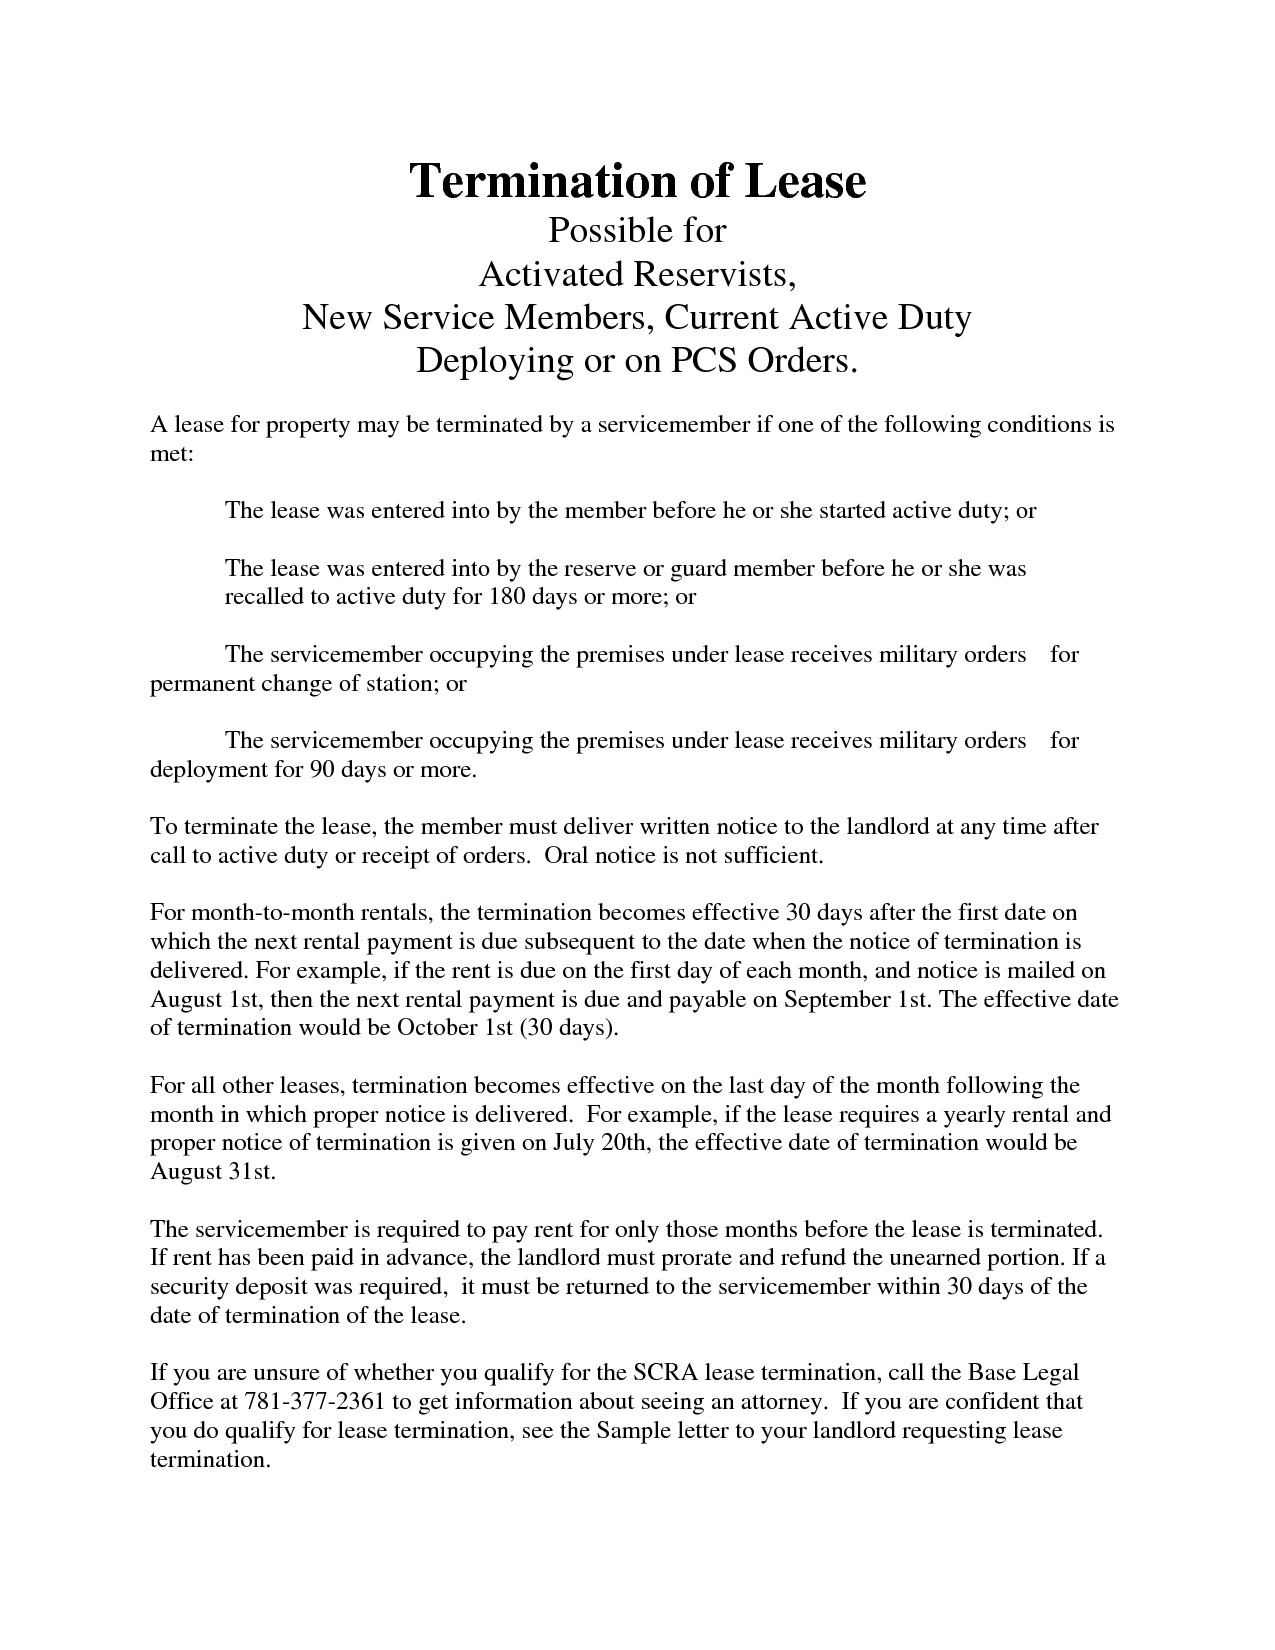 Giving Notice to Tenants Letter Template - 20 Unique 60 Day Notice Termination Tenancy Template